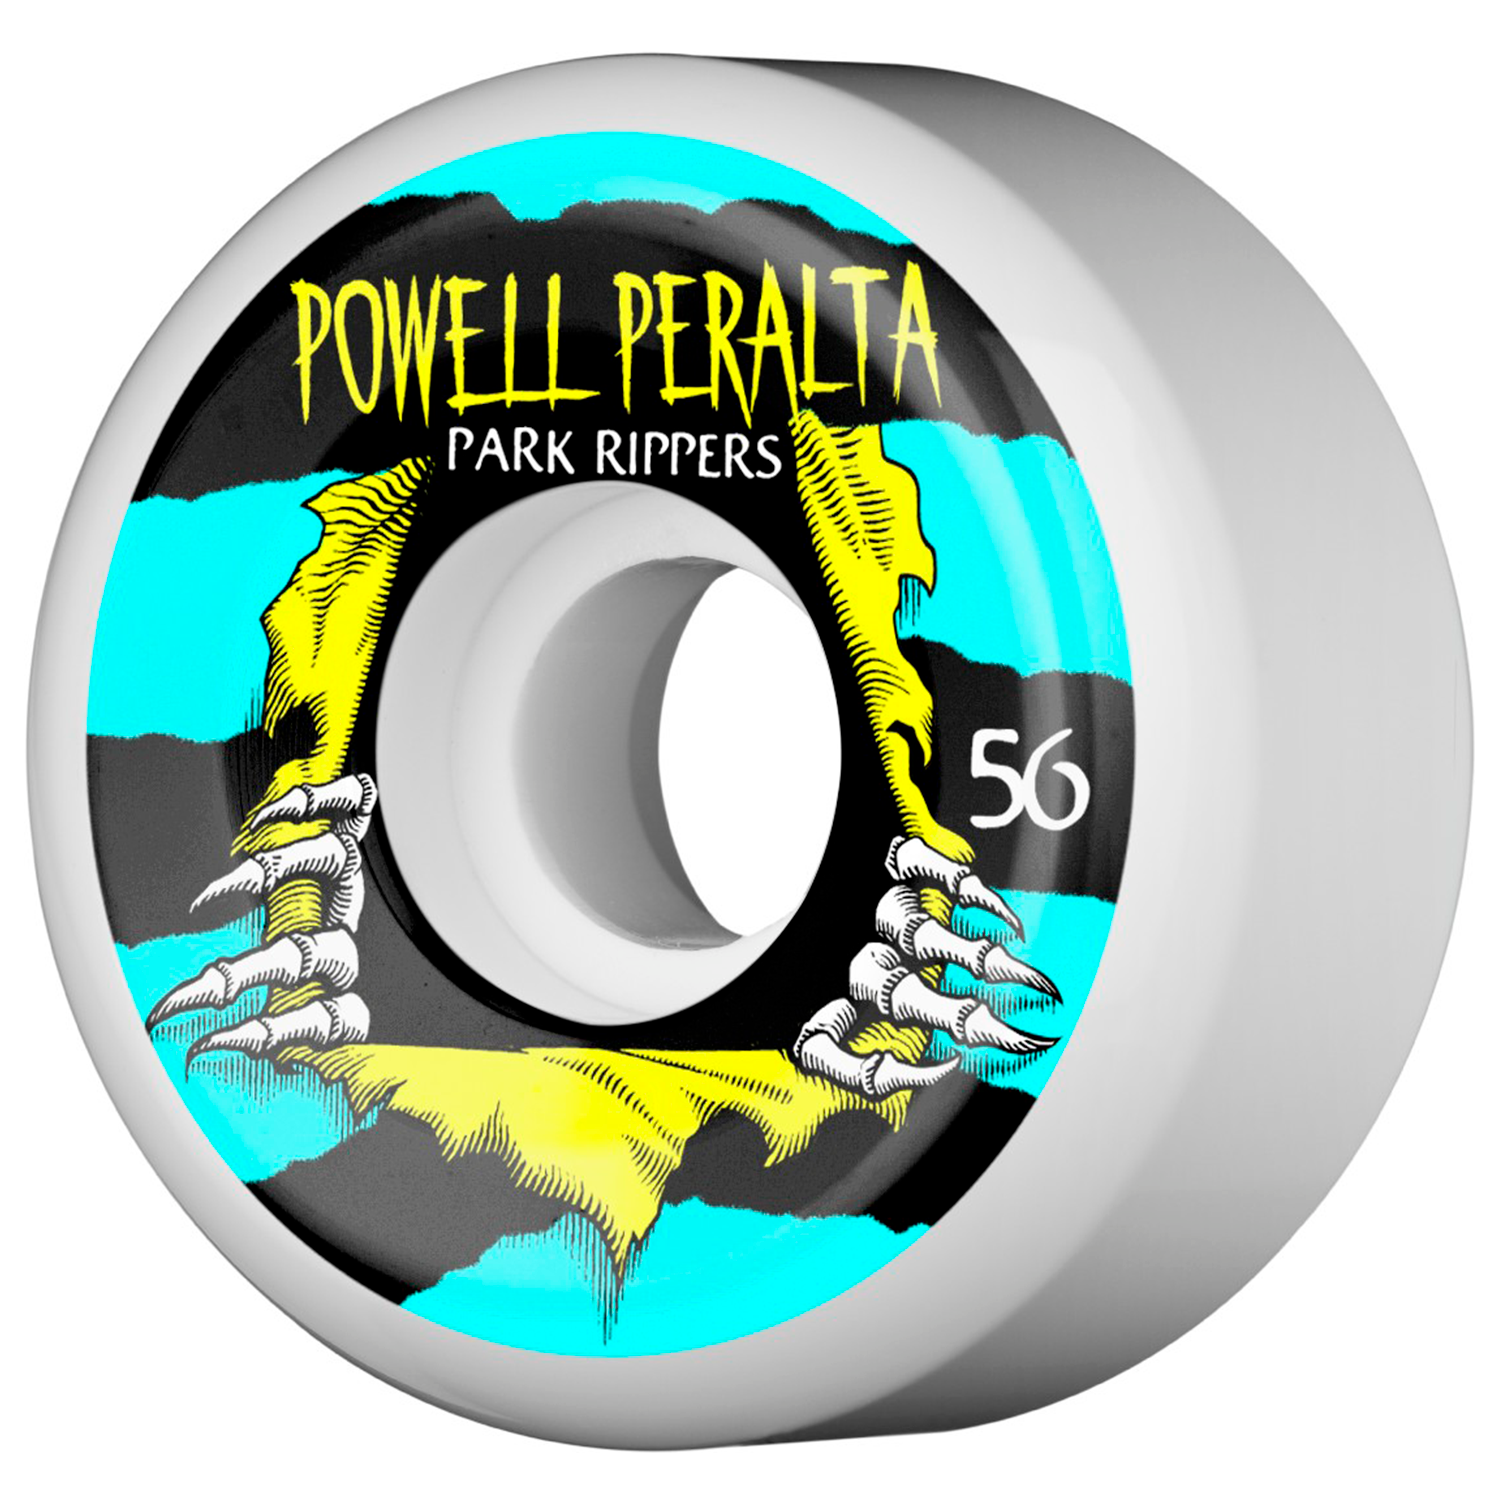 Llantas Powell Peralta Park Rippers 56mm